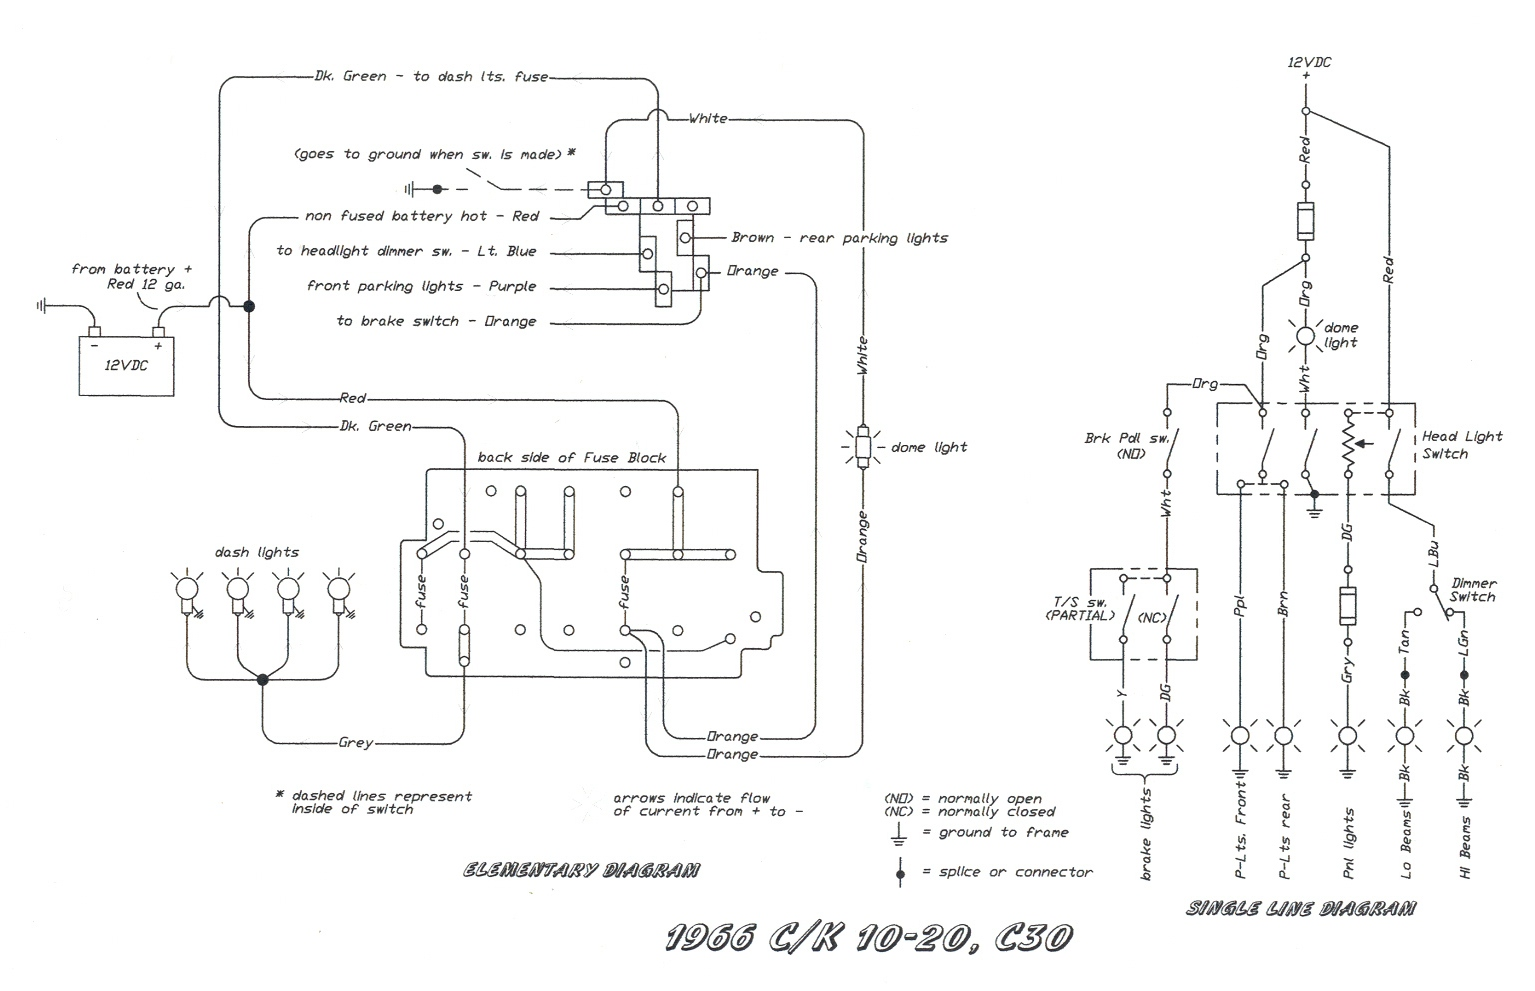 1963 gmc headlight wiring harness wiring diagrams global 1957 gmc headlight wiring diagram wiring diagram home [ 1535 x 991 Pixel ]